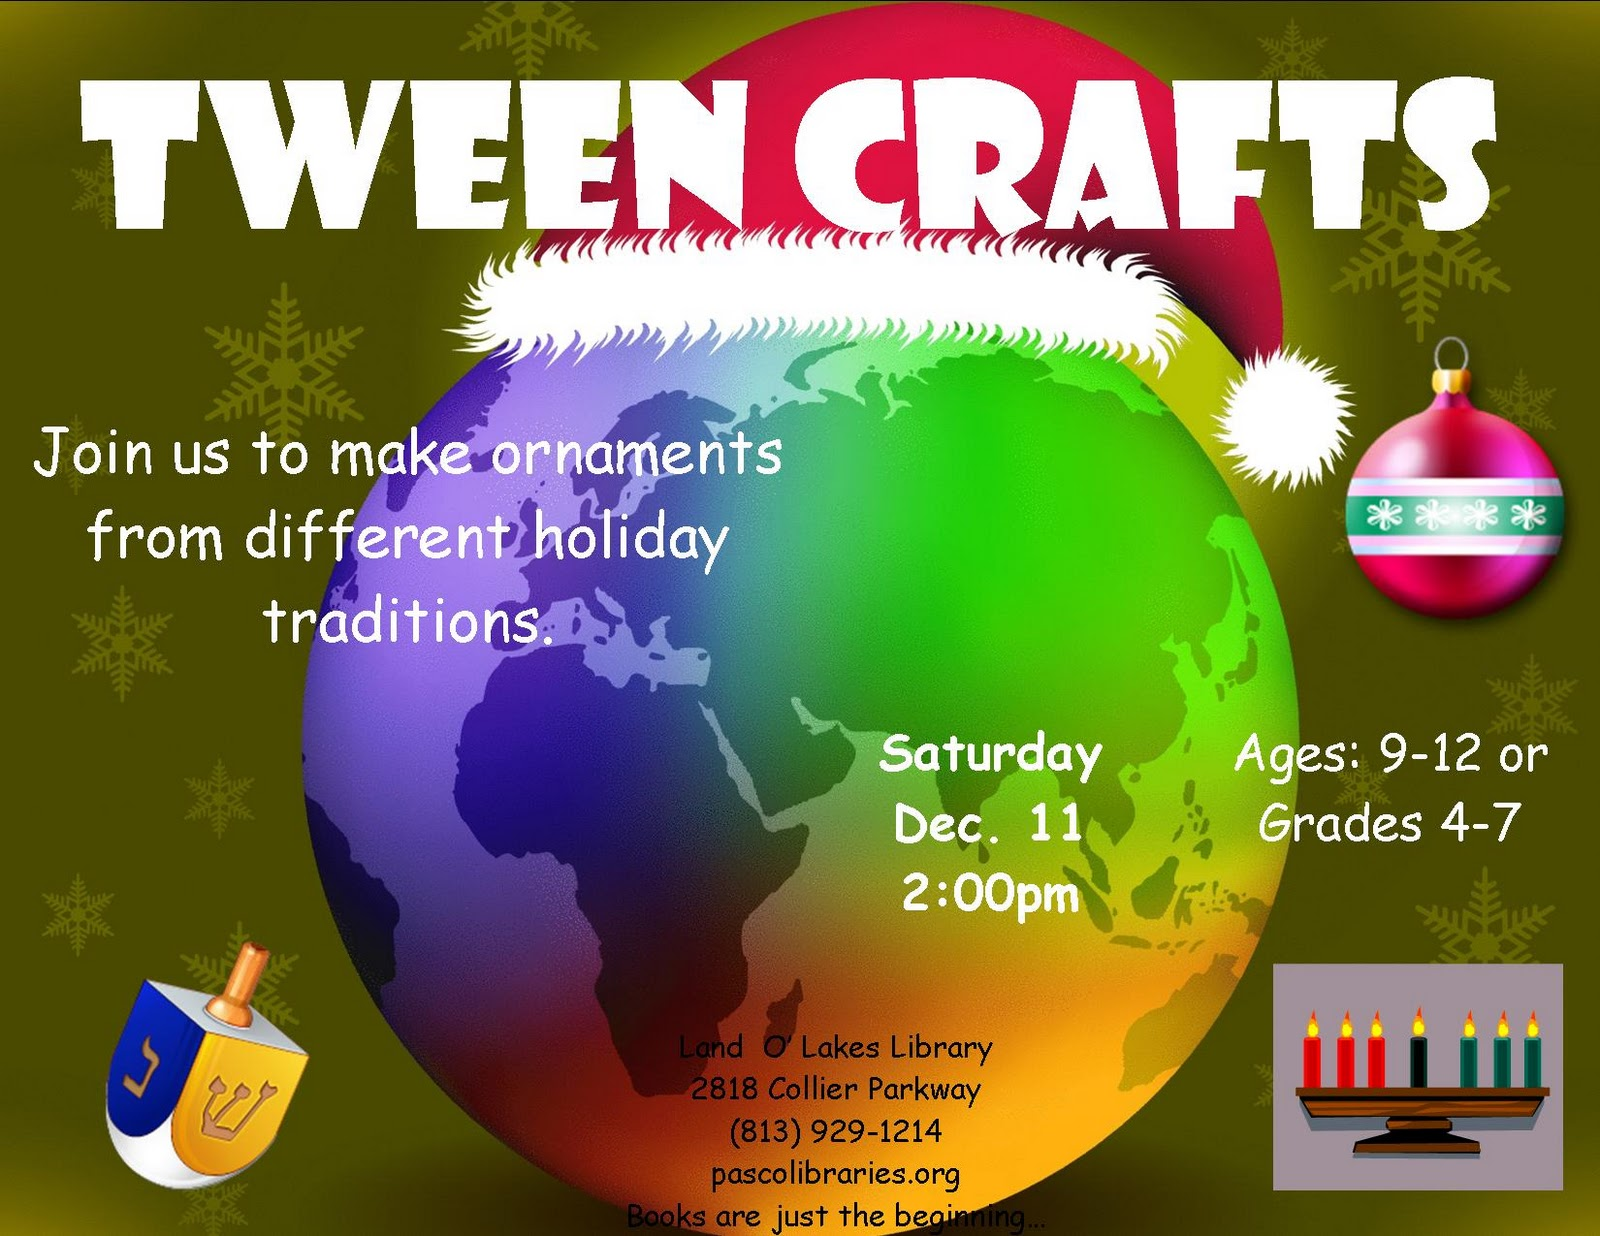 Tween crafts pcls land o 39 lakes library blog for Holiday crafts for tweens